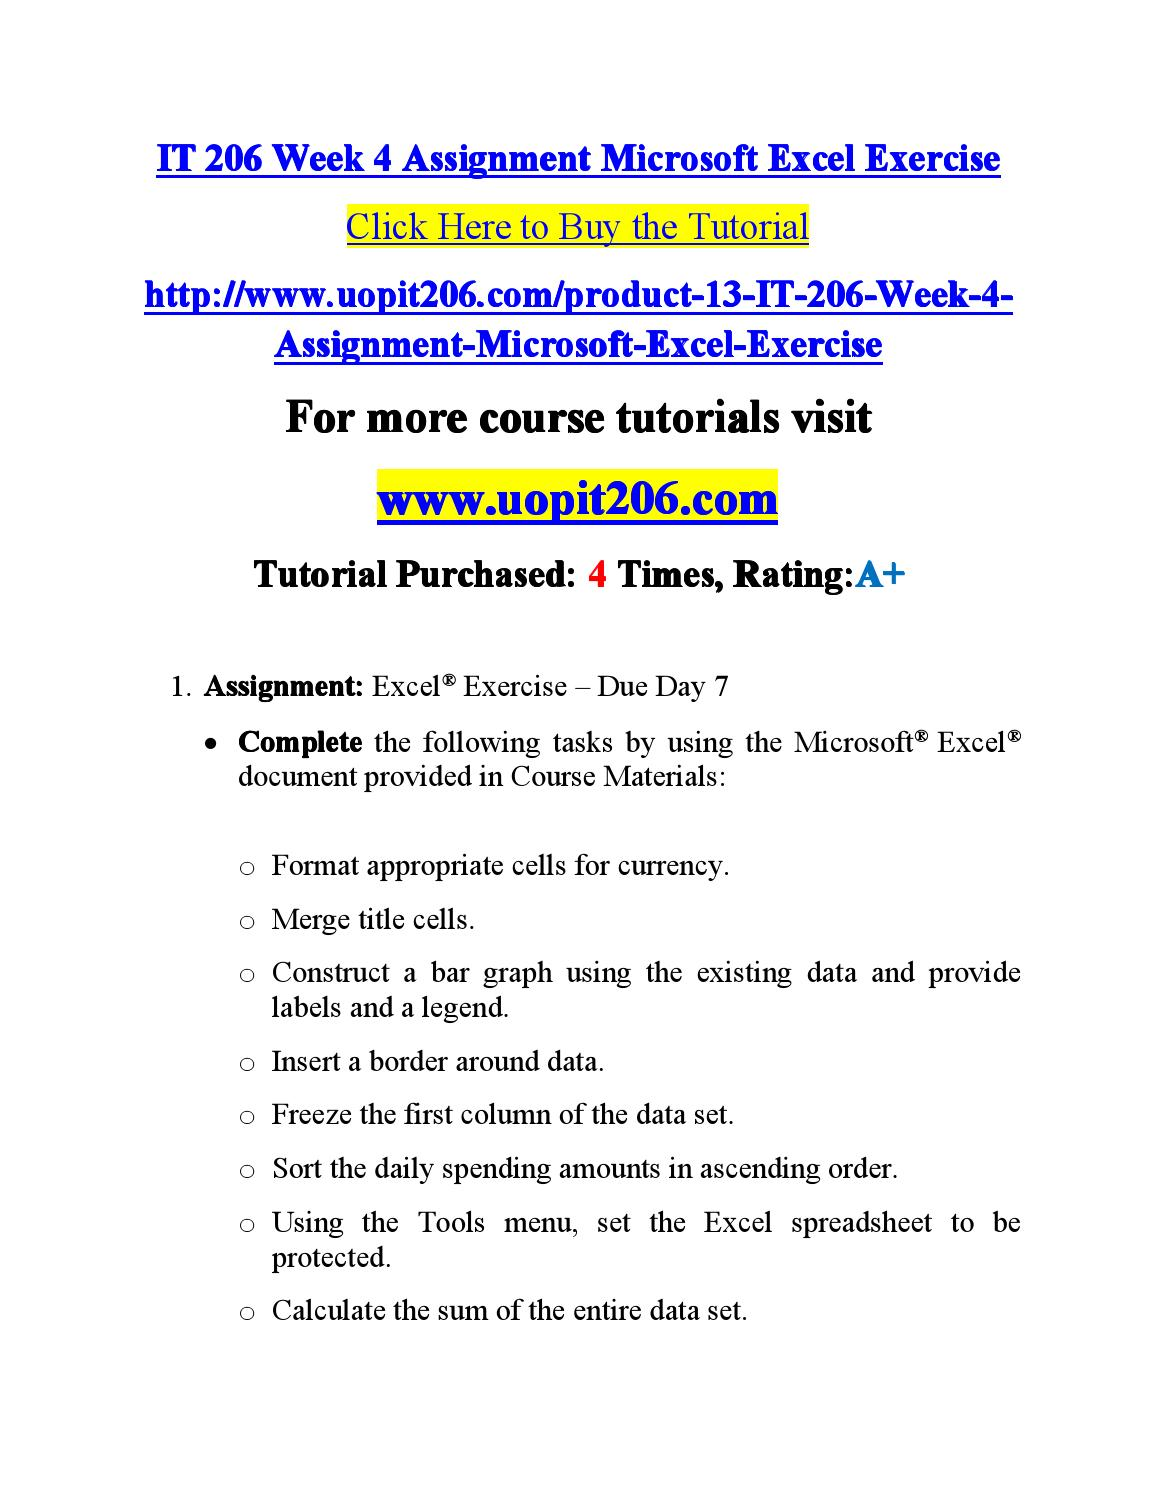 It 206 week 4 assignment microsoft / it206dotcom by